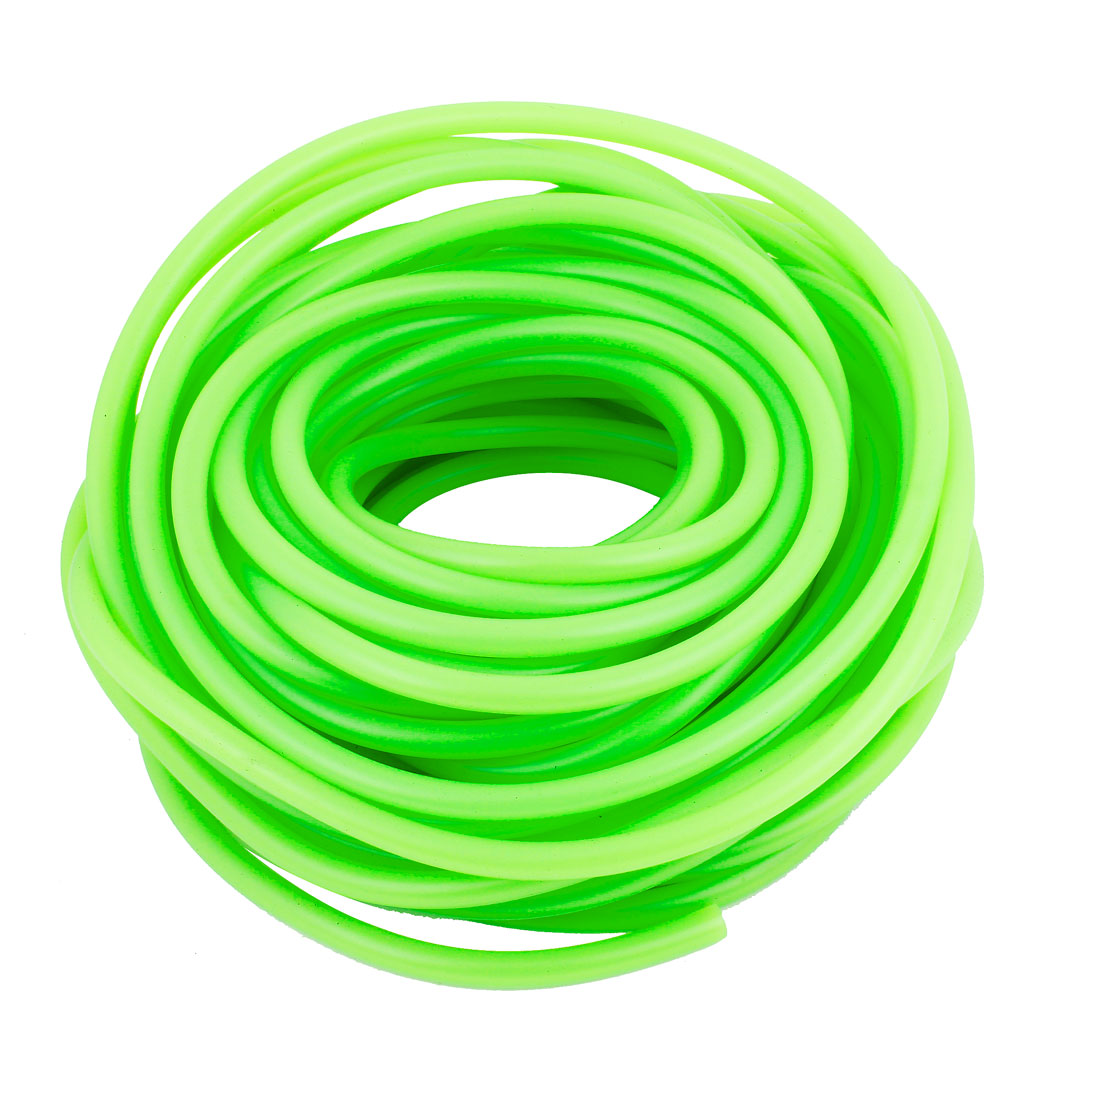 "52.5ft Long 0.16"" ID Green Fuel Line Scooter Boat Jet Ski Gas Lawn Mover Atv Pocket Dirt Bike"